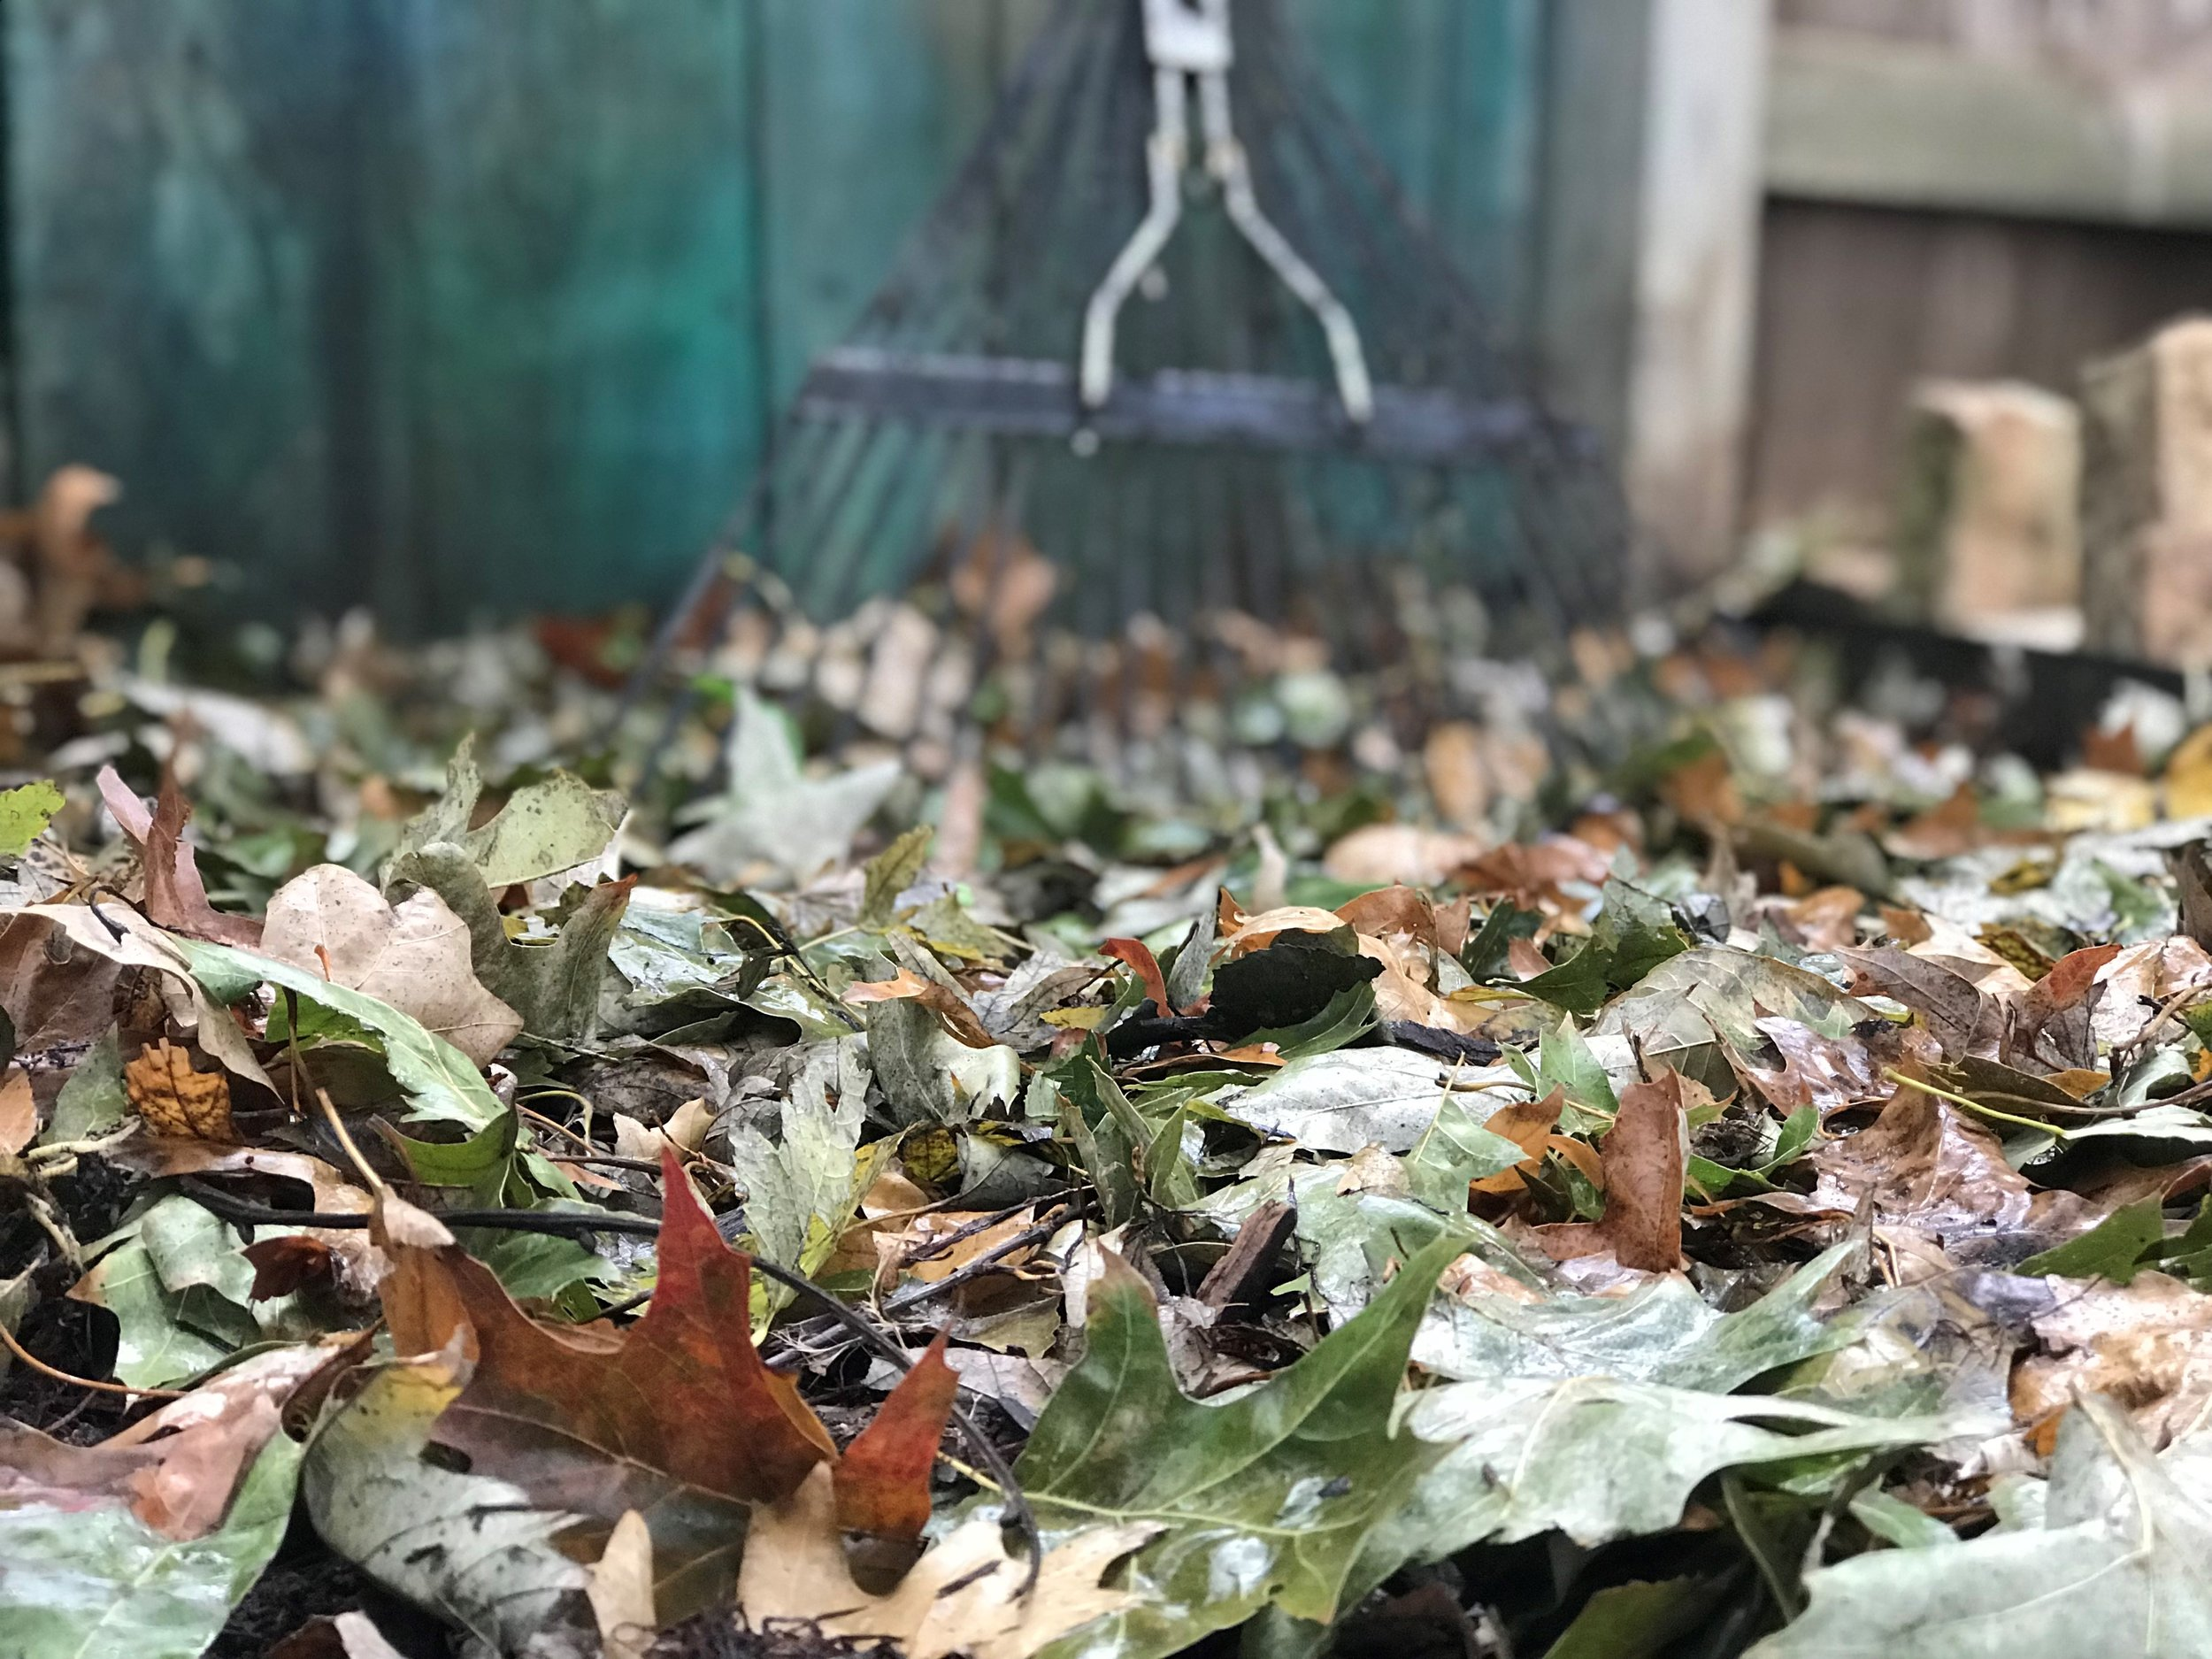 Mulch - The leaves are falling and frosty nights are cooling the soil. Whether you prefer Cedar Bark, Shredded Native Tree Trimmings, Straw or Shredded Leaf Debris, now is a great time to put your plants to bed and protect and improve your soil, with a new top-dressing blanket of mulch.Leaf debris as mulch: To improve landscape beds and garden soil, rake or blow the leaves onto the driveway, then run your mower over them to chop the leaves in a shredded material, creating a high quality, top dress, leaf mulch. Plant and soil health is greatly improved utilizing Mother Nature's fertilizer.Mulch Benefits: * Insulates the soil helping to provide a buffer from heat and cold temperatures. * Retains soil moisture in both summer and winter. * Keeps weeds out preventing unwanted competition. * Prevents soil compaction. * Improves your soil by adding beneficial organic matter as the material breaks down.